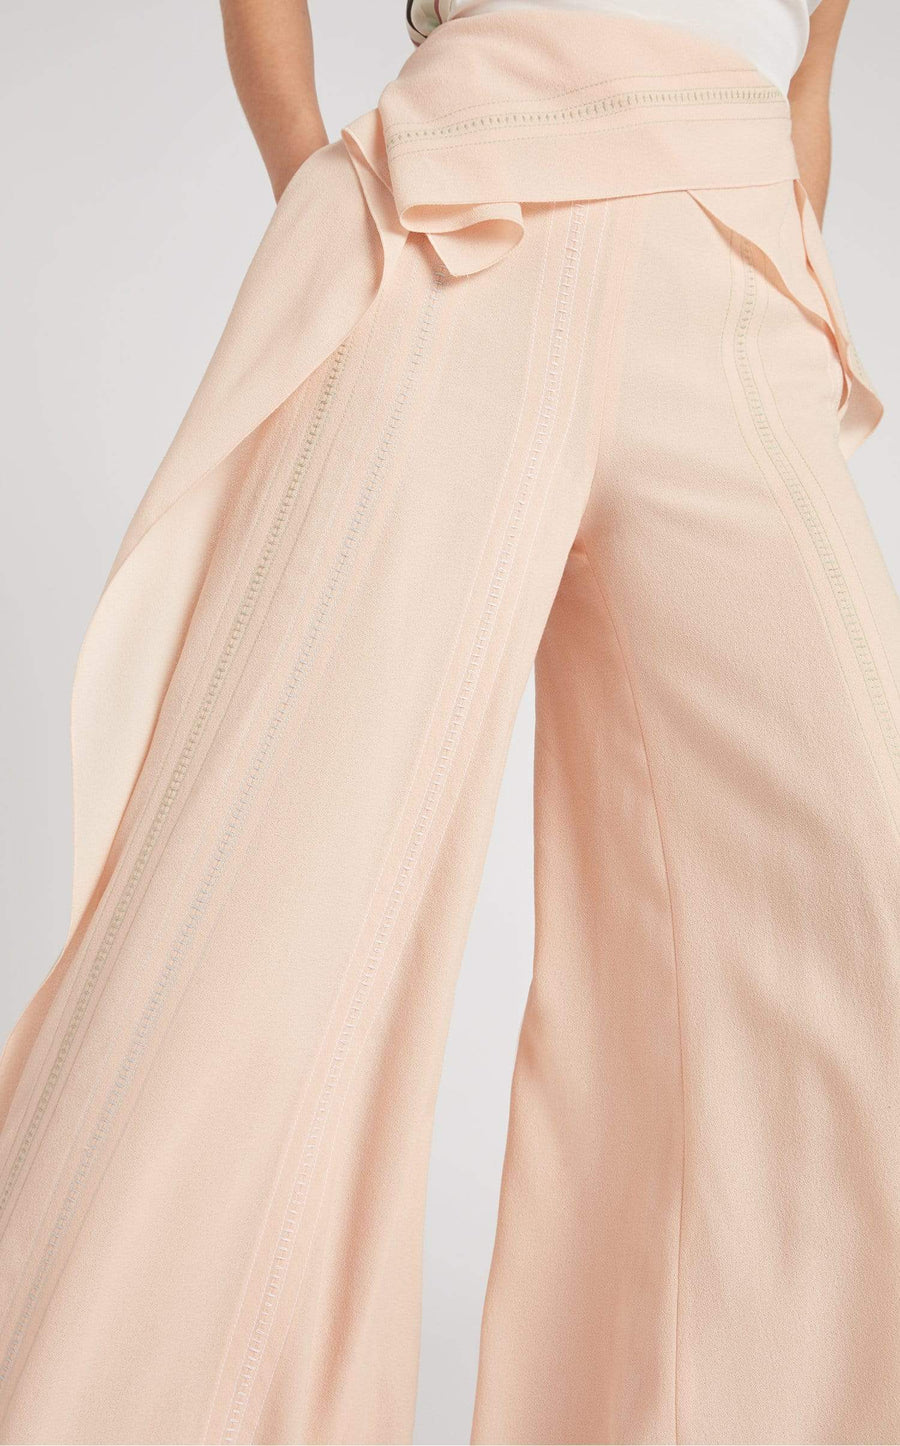 Argott Trouser In Light Peach Multi from Roland Mouret